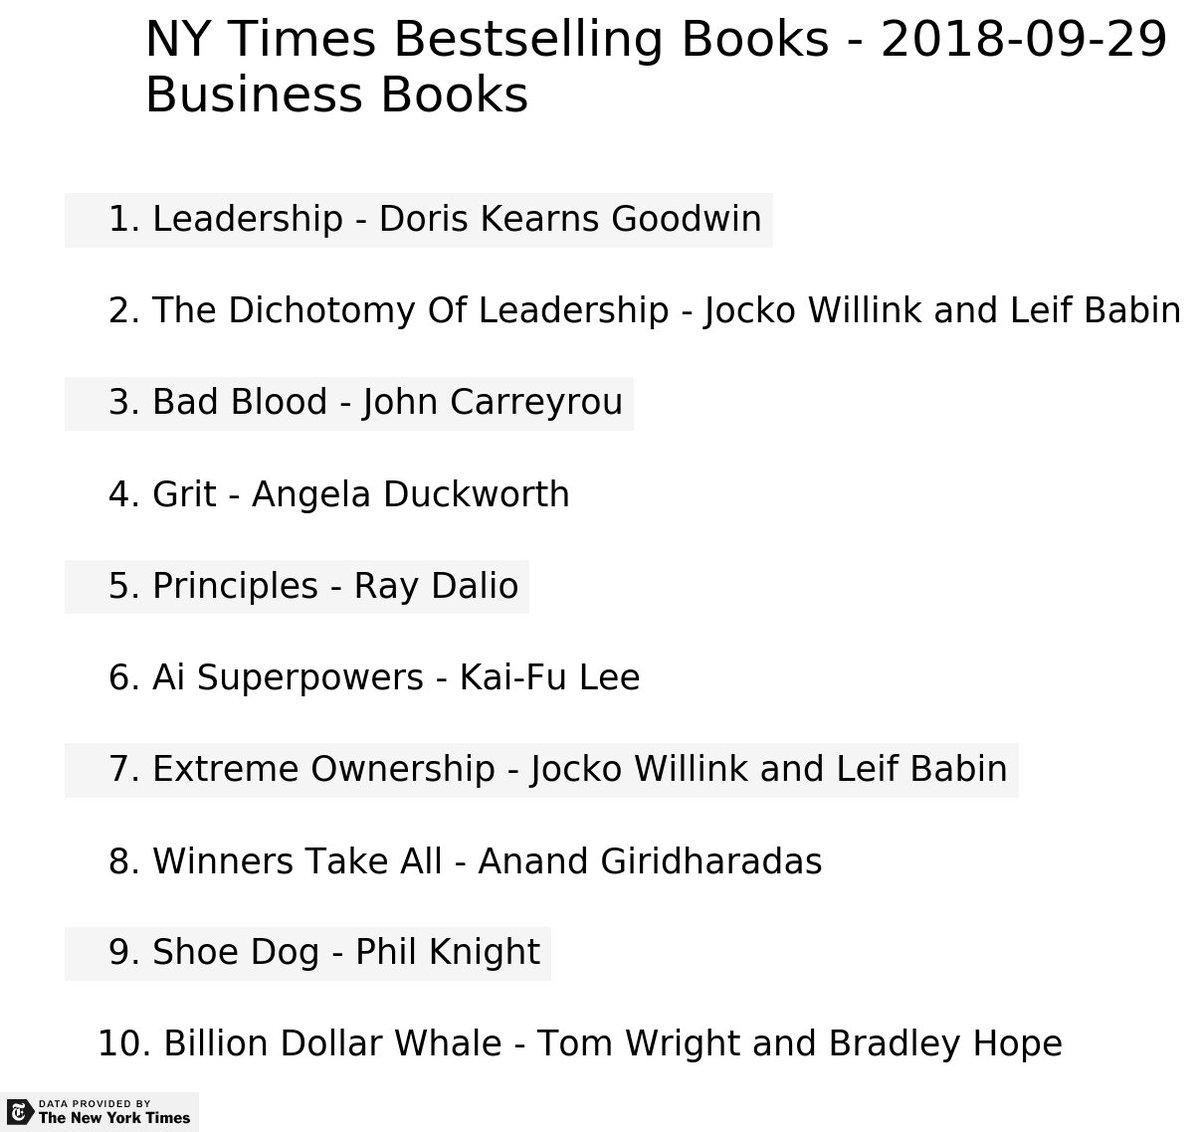 Dashboardom On Twitter Nytimes Bestselling Books 2018 09 29